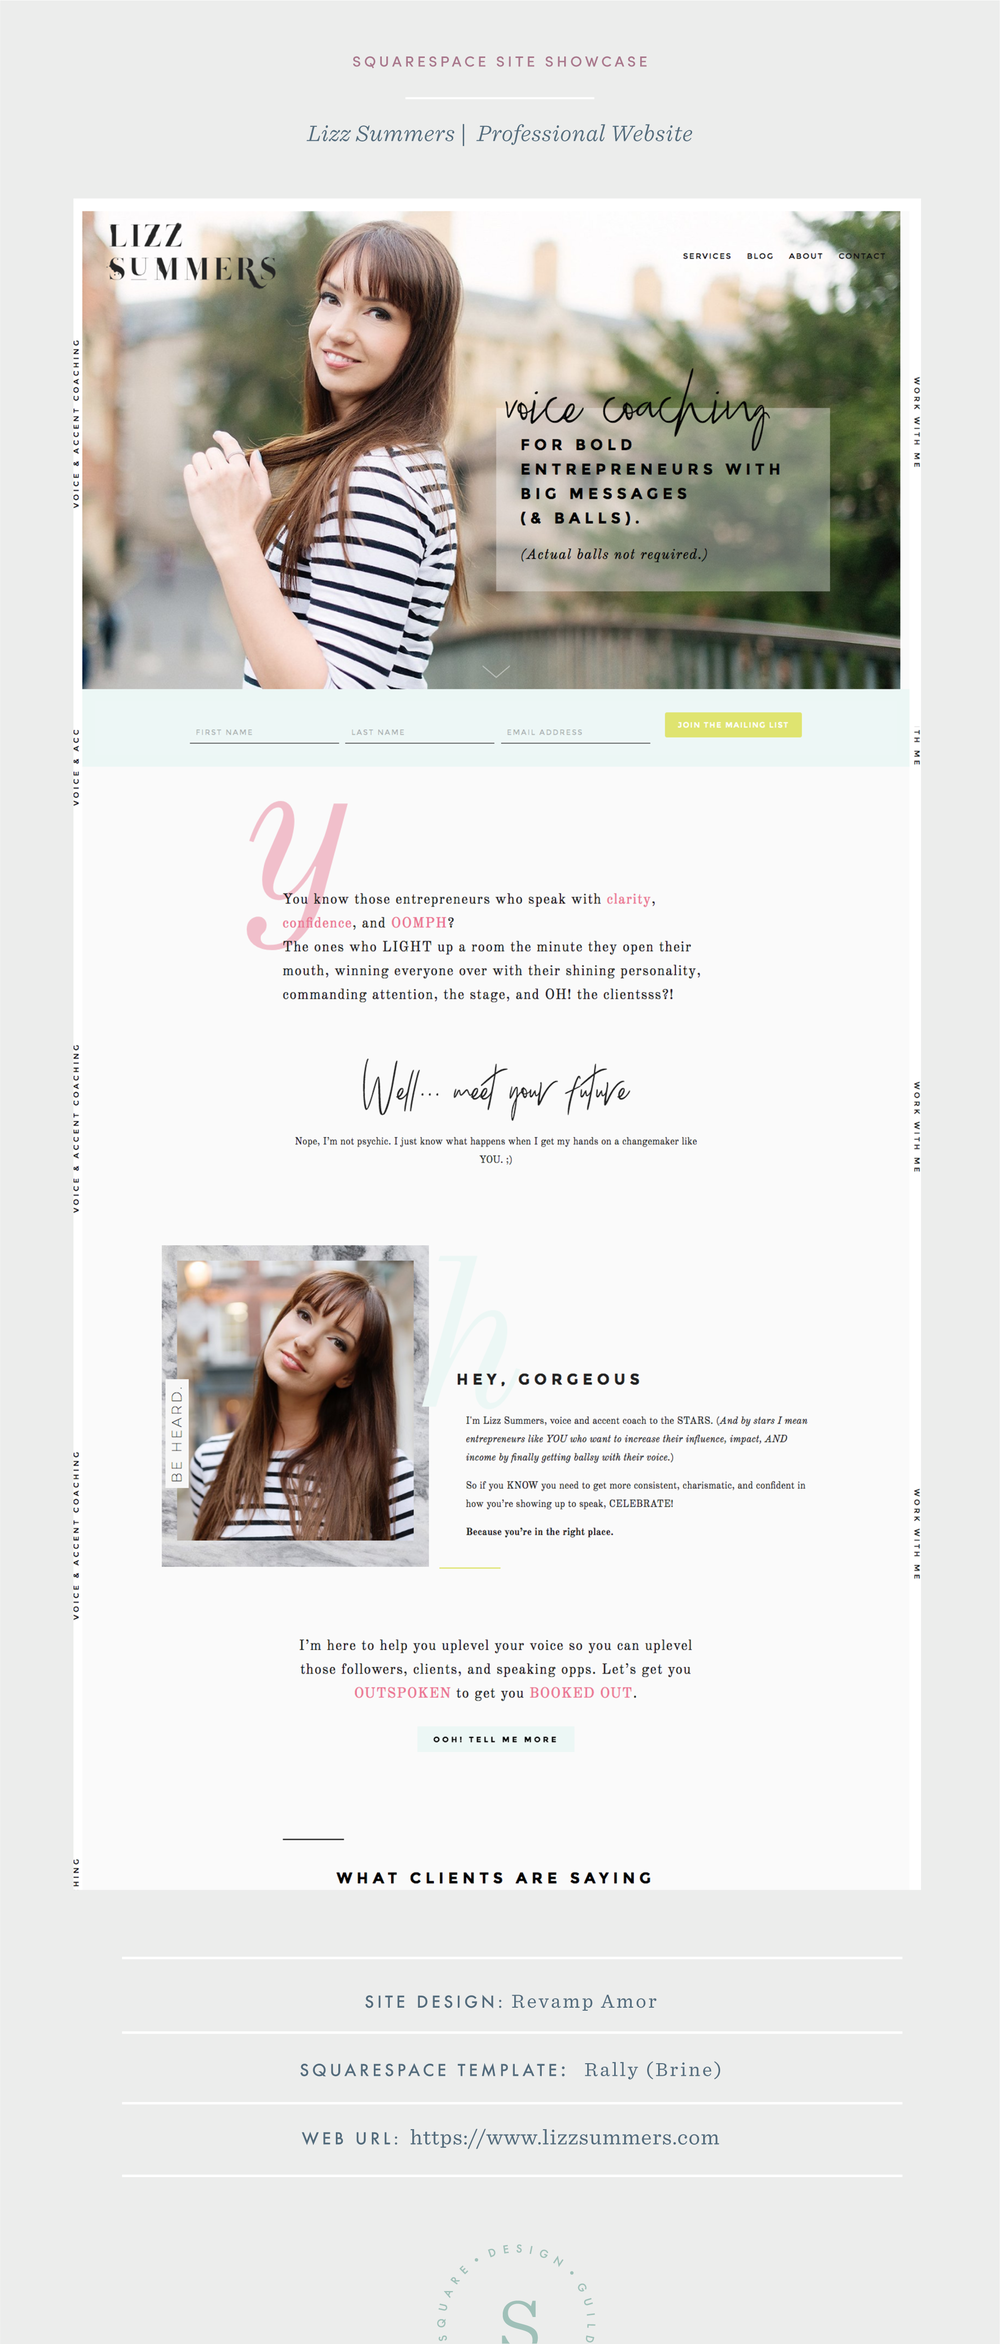 Editorial Style Coaching Website for Squarespace on Brine Template